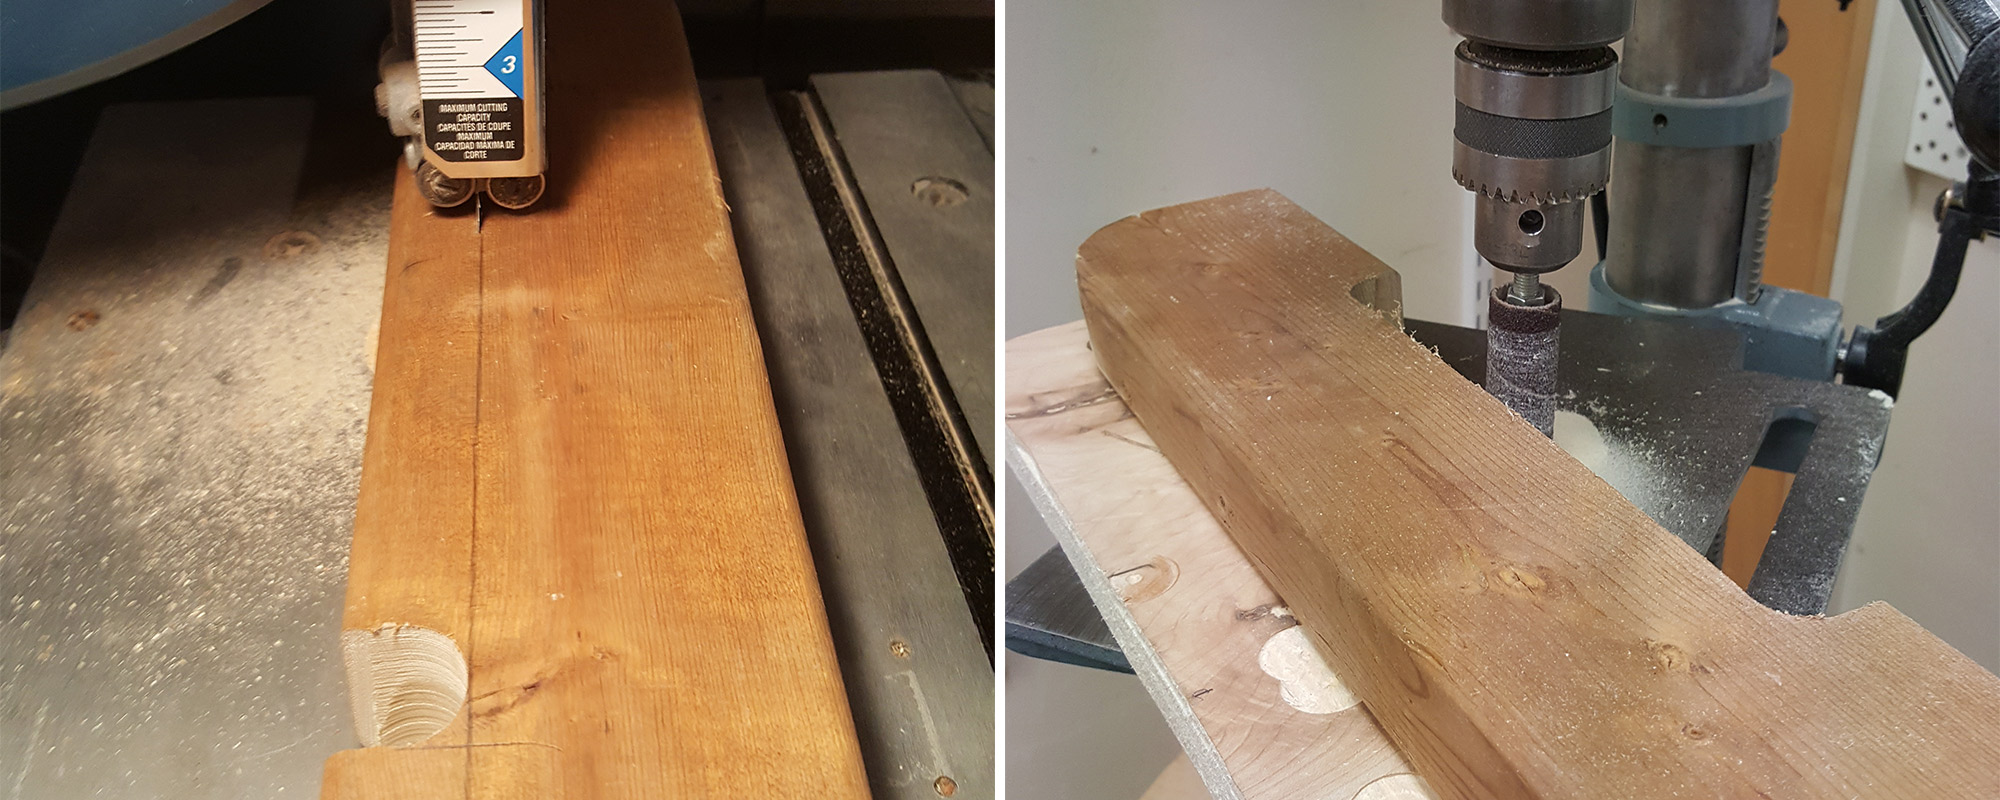 Left: Removing the waste. Right: Smoothing the inside.